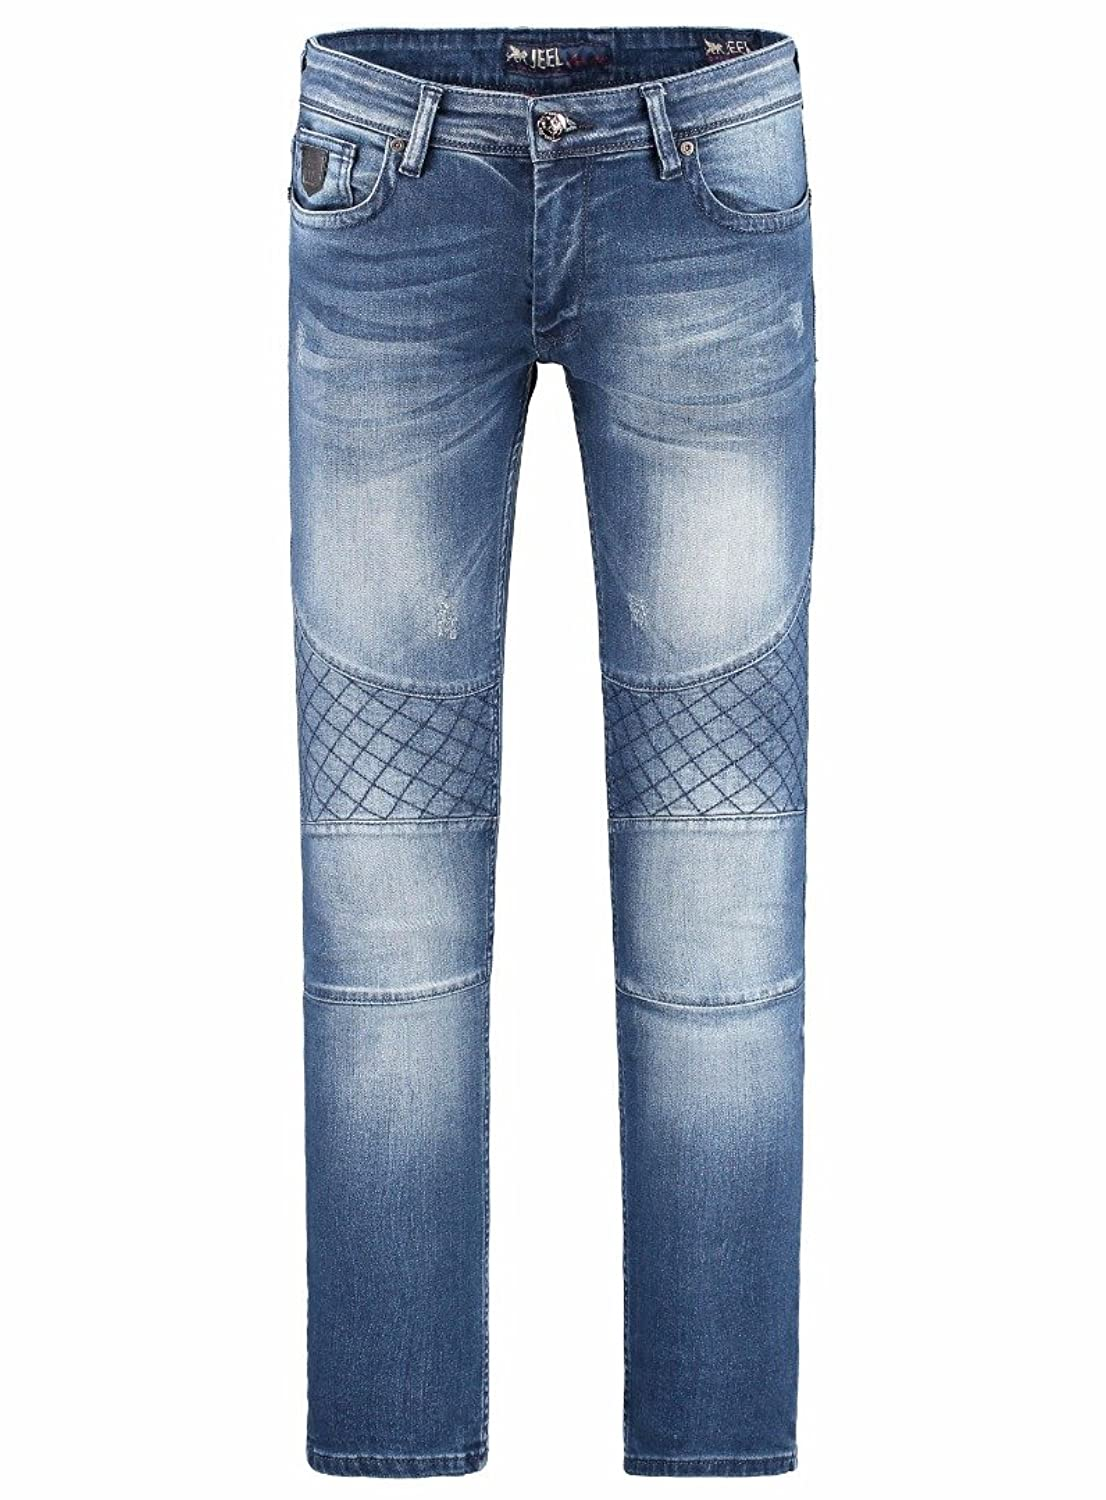 JEEL Men&39s Skinny Stretch Jeans with Cross Stitching on sale